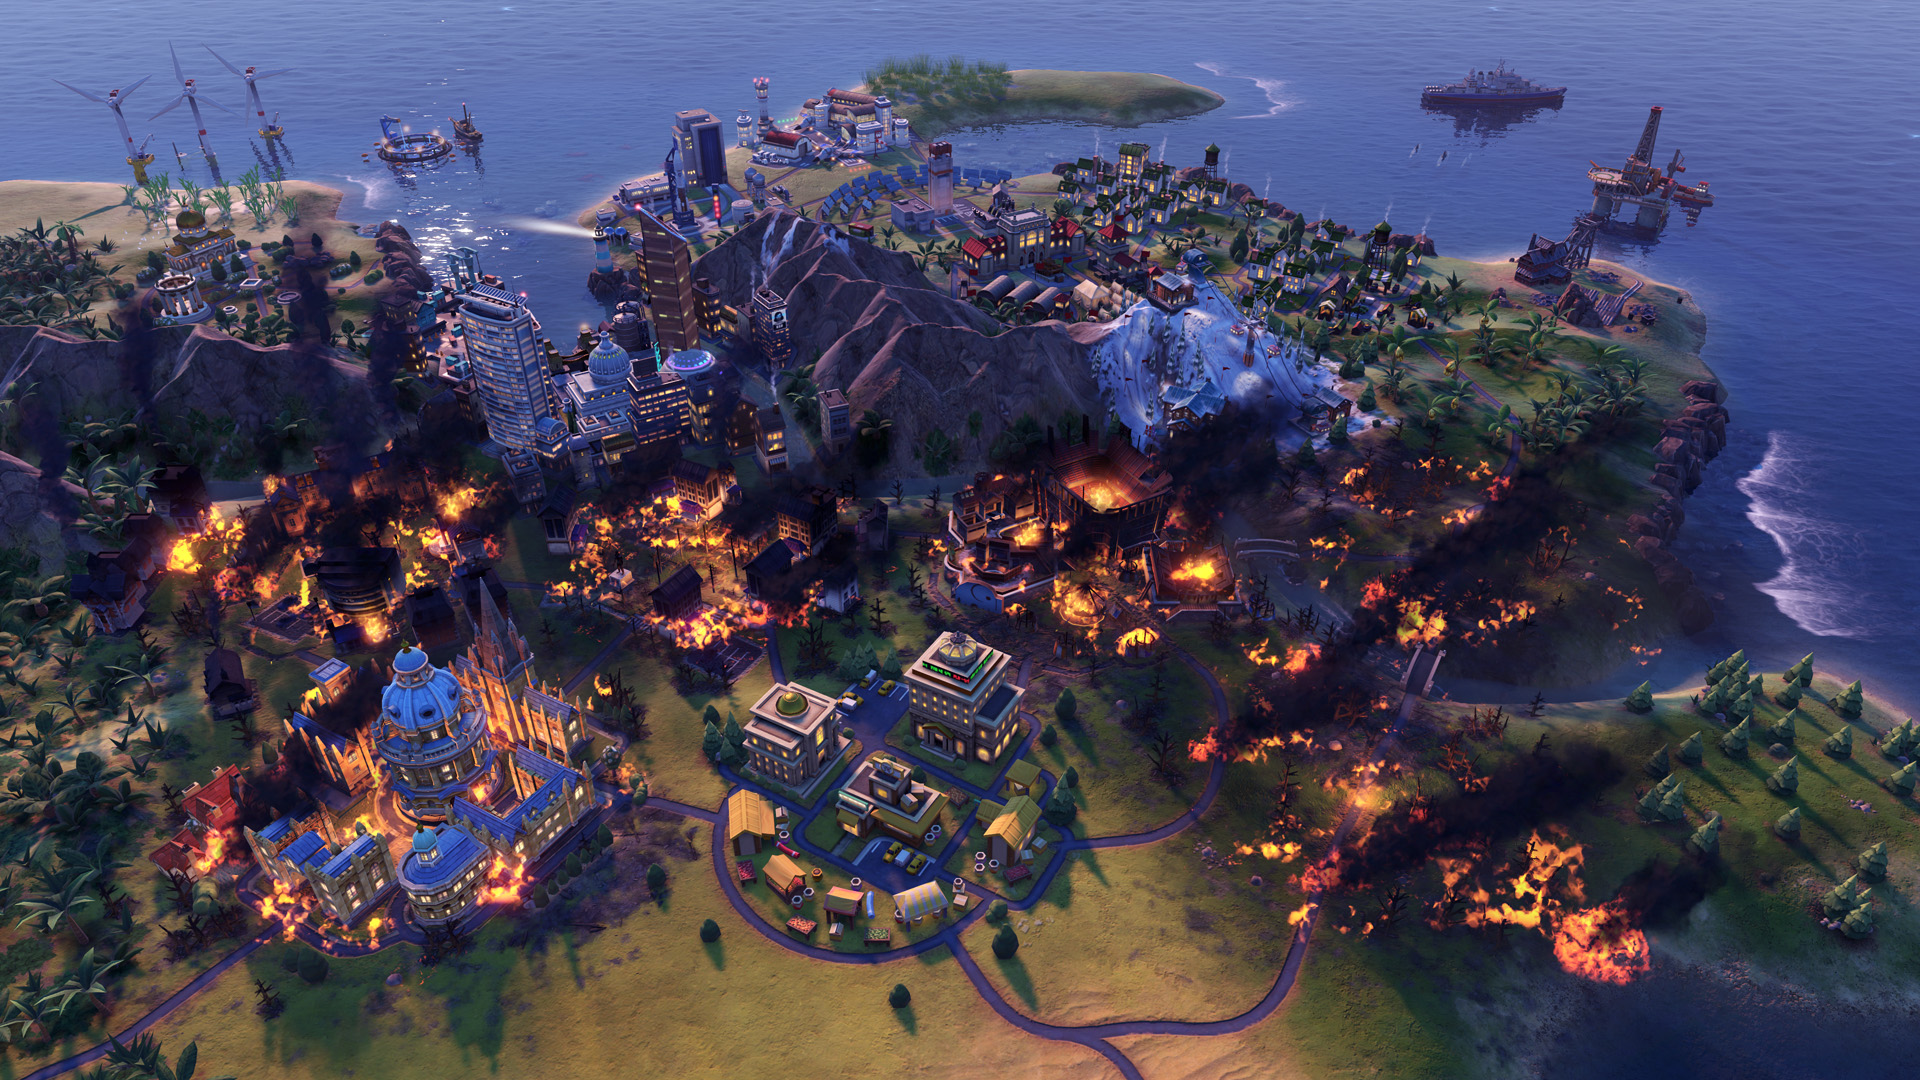 Civilization VI - New Frontier Pass - Maya - Gran Colombia Pack - Apocalypse Mode Forest Fire